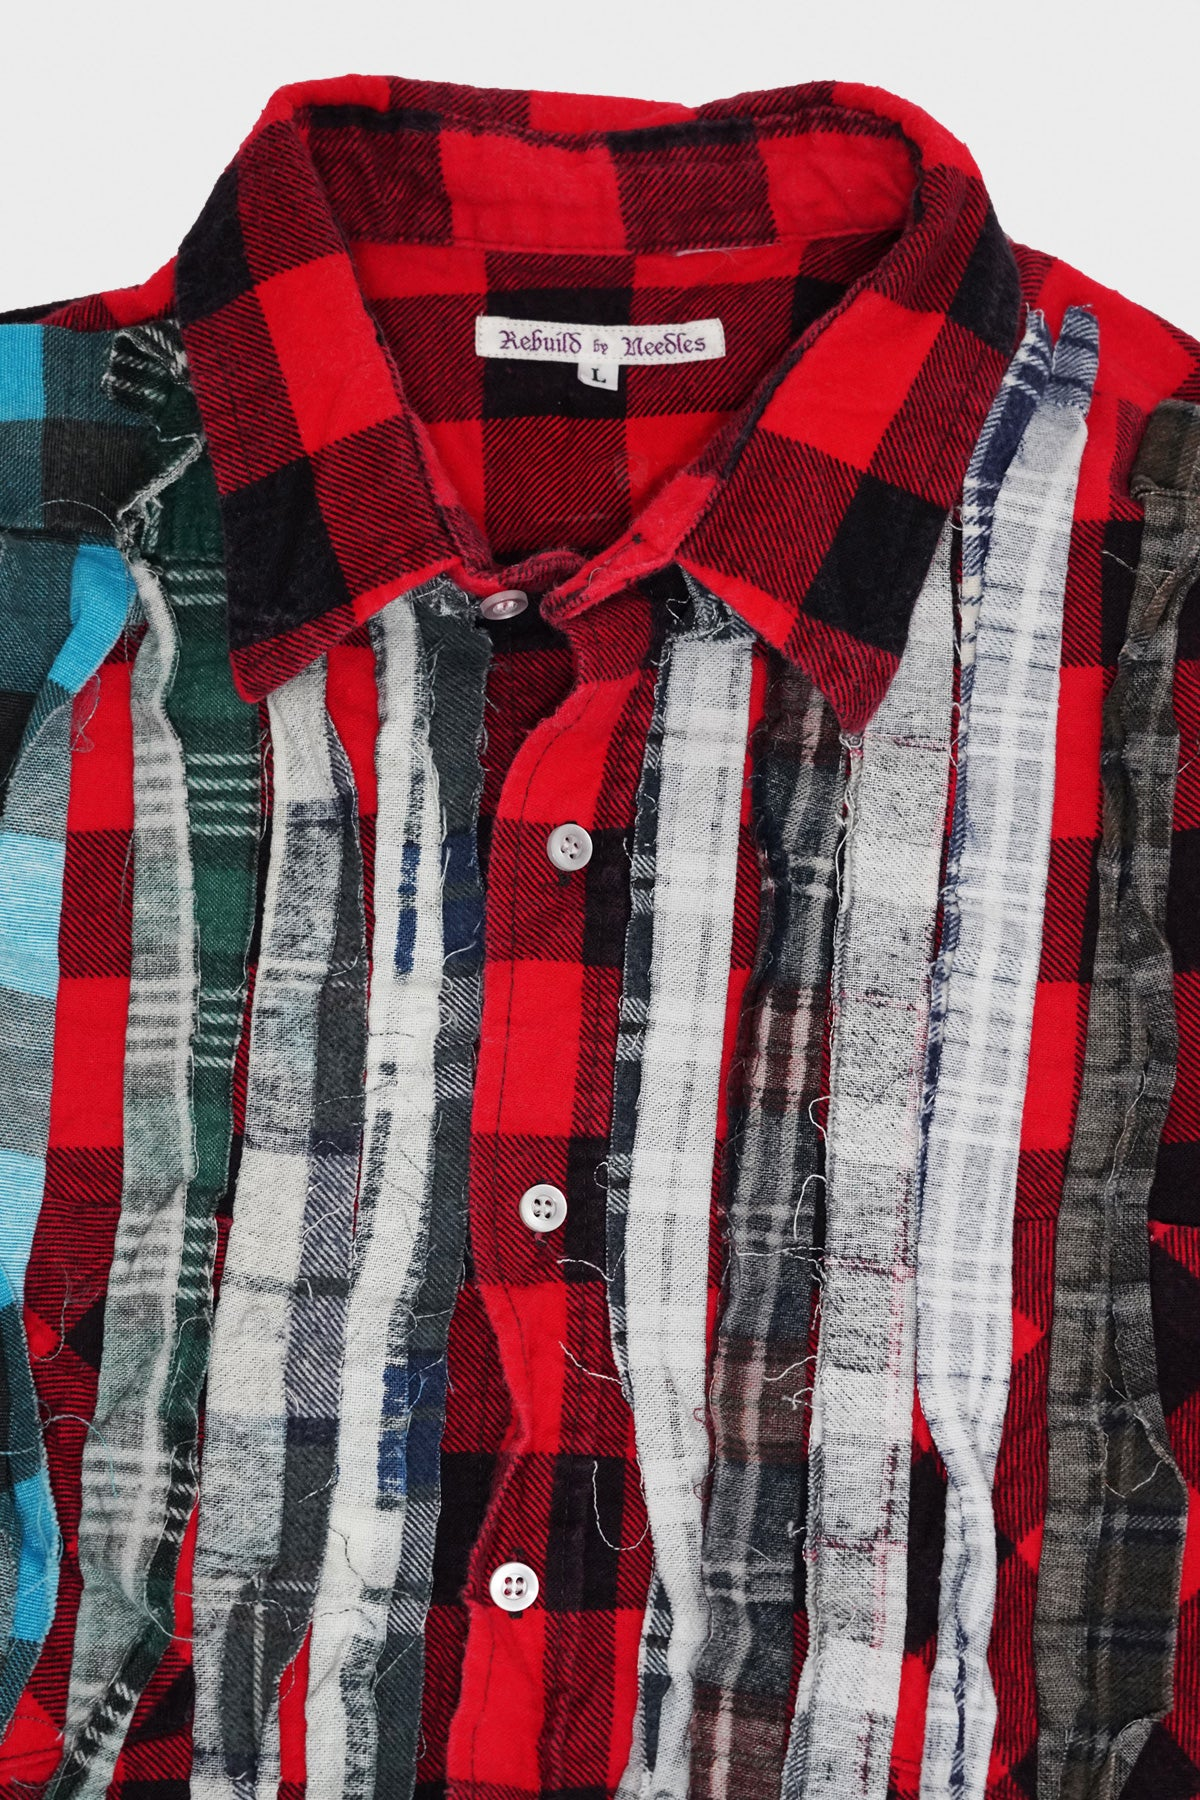 Needles - Ribbon Flannel Shirt - Assorted #8 - Large - Canoe Club